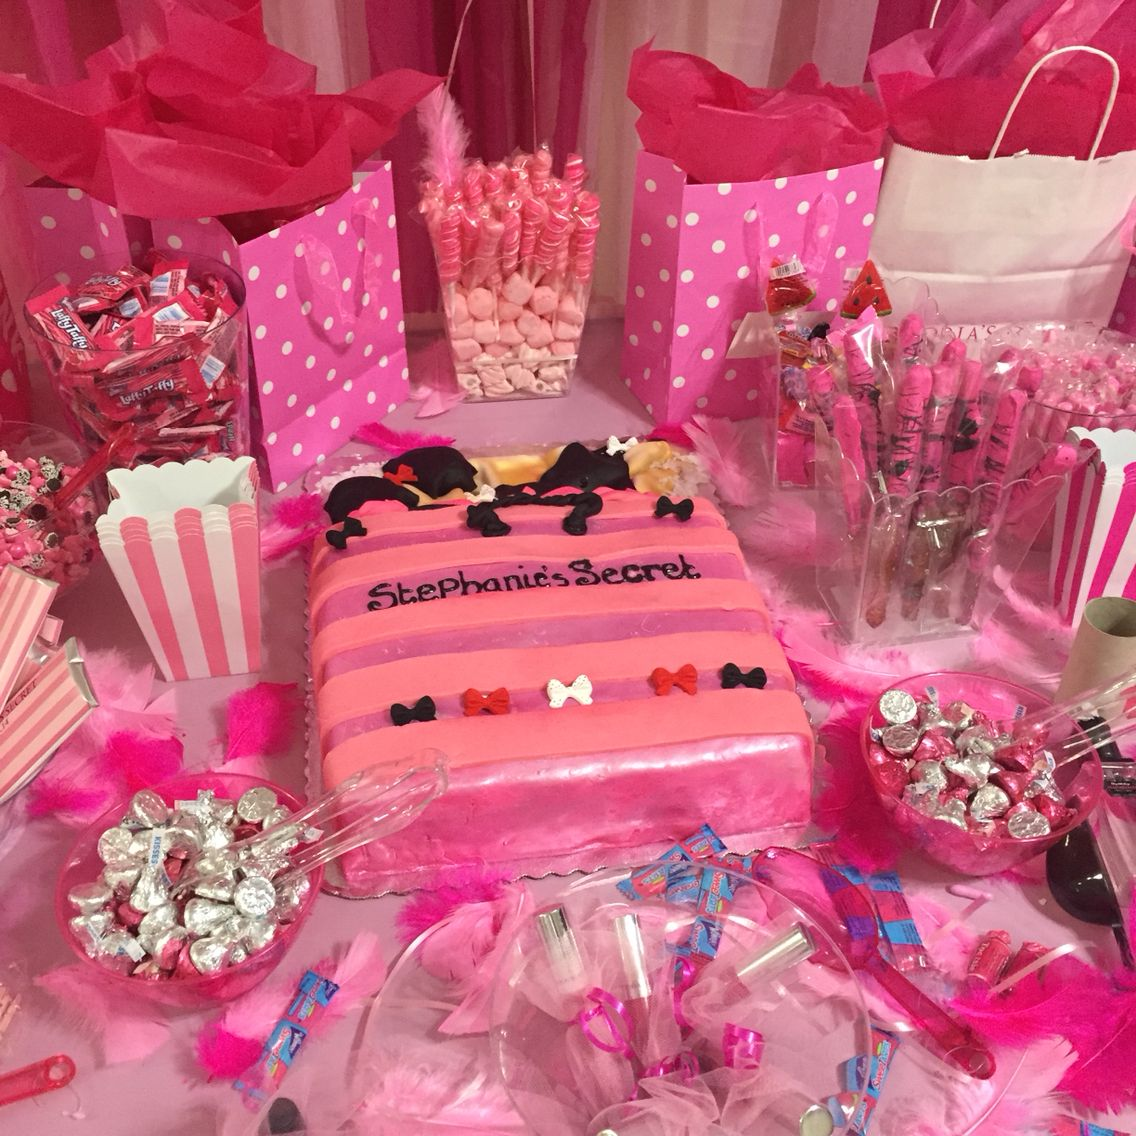 Candy buffet pink bridal shower Victoria's Secret